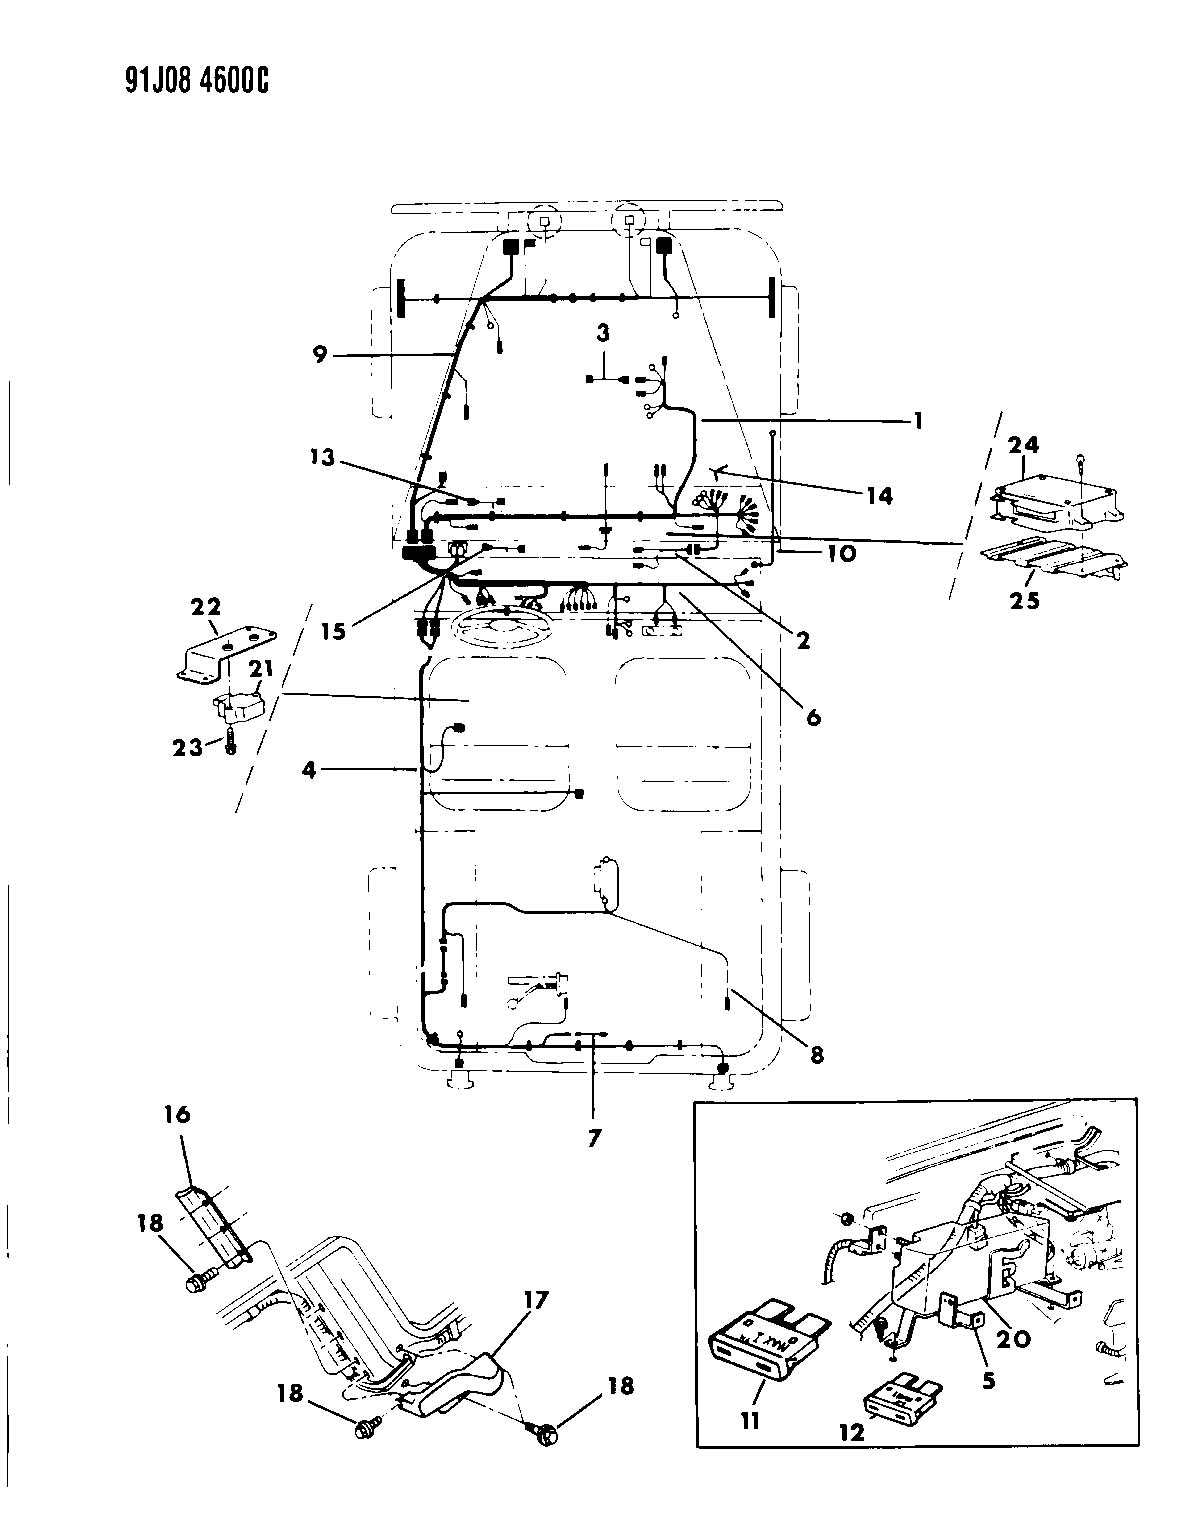 1988 Jeep Grand Wagoneer Wiring Diagram on 1988 Jeep Anche Wiring Diagram